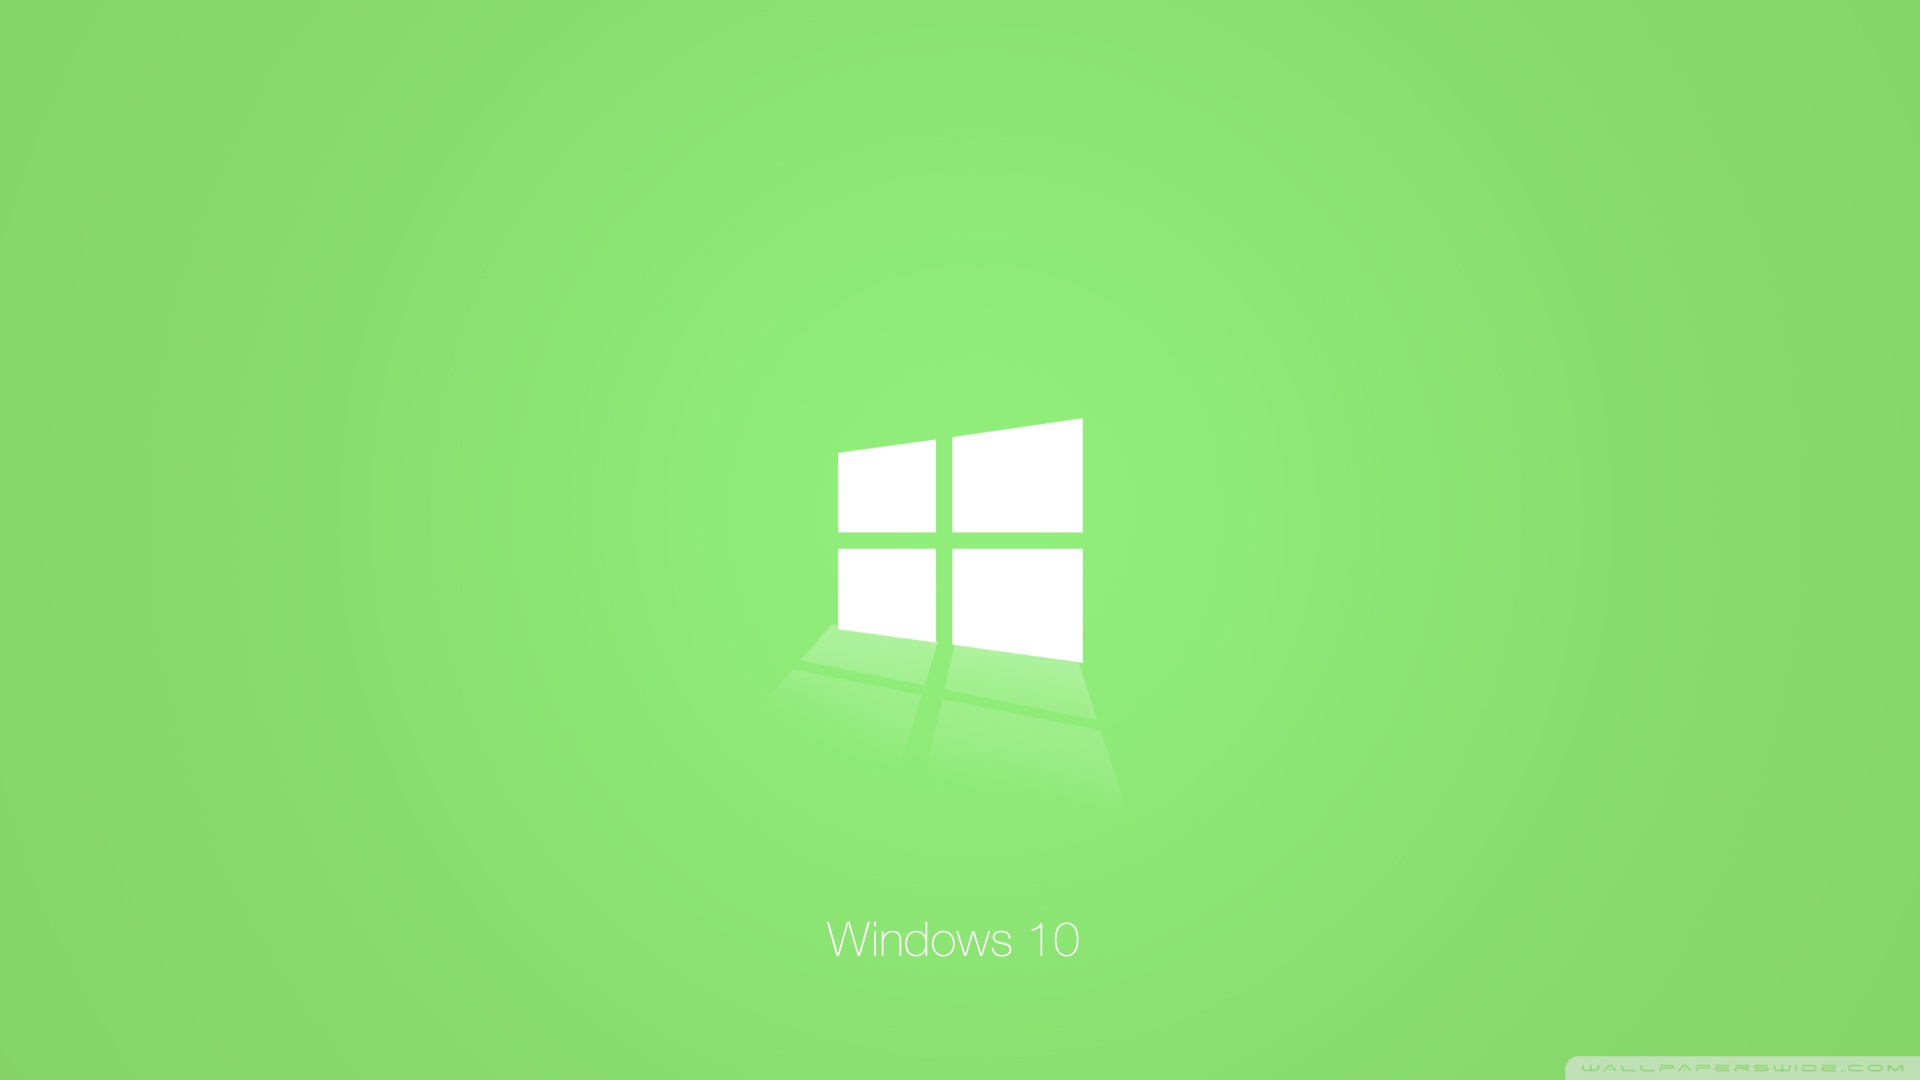 windows 10 wallpapers 10 1920x1080